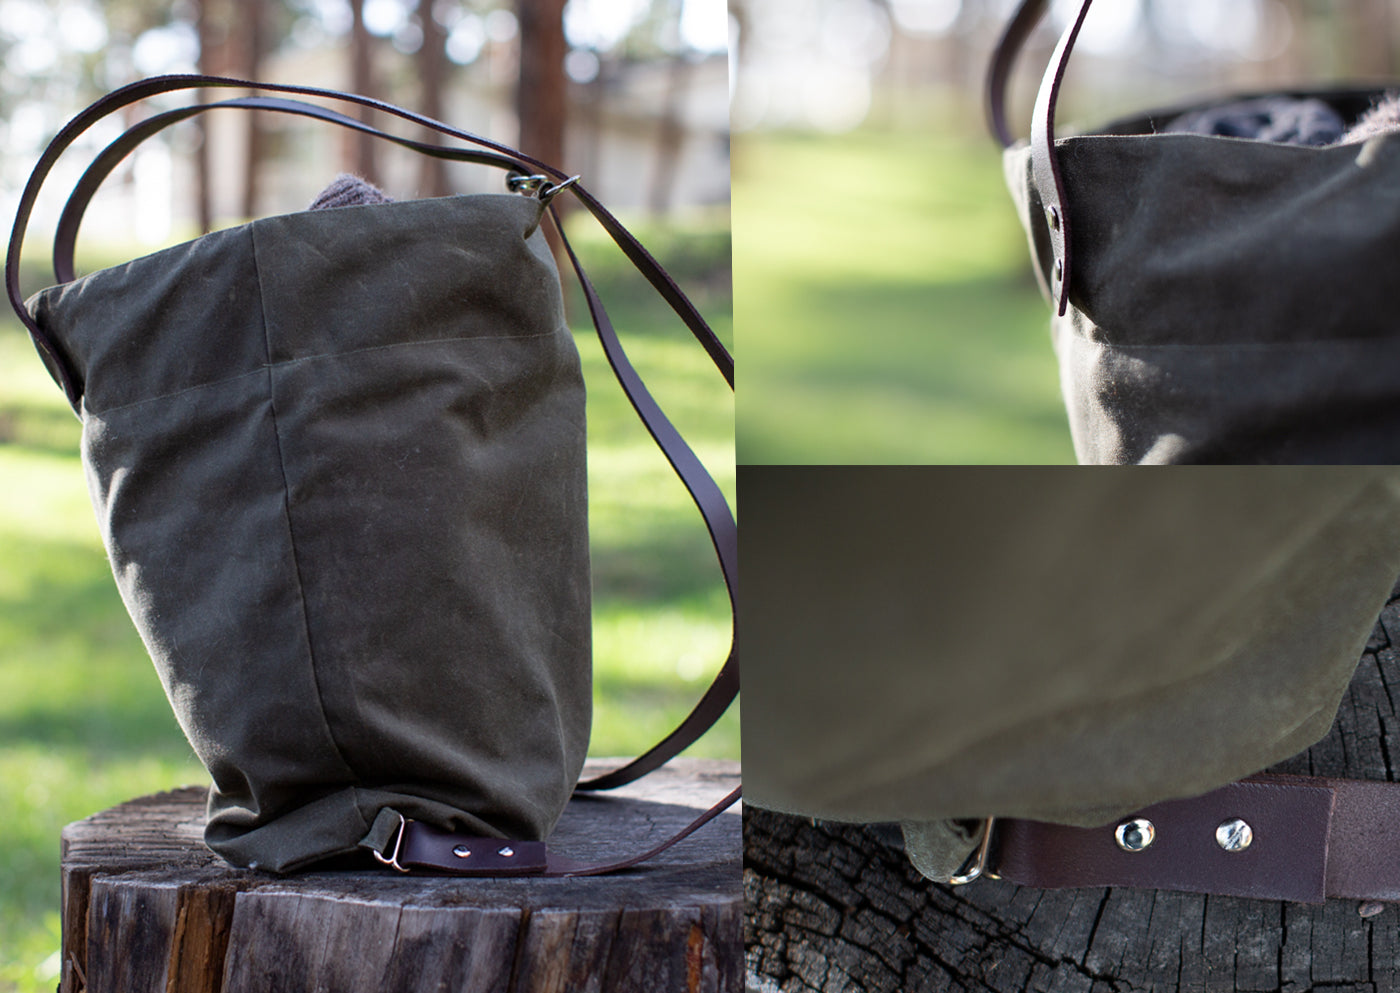 Collage images of the Costermonger backpack.  One is a side shot of the bag, one is the top rivets and bottom rivets of the bag.  The bag is outside sitting on a tree stump and the canvas bag is evergreen tree green, with dark leather straps.